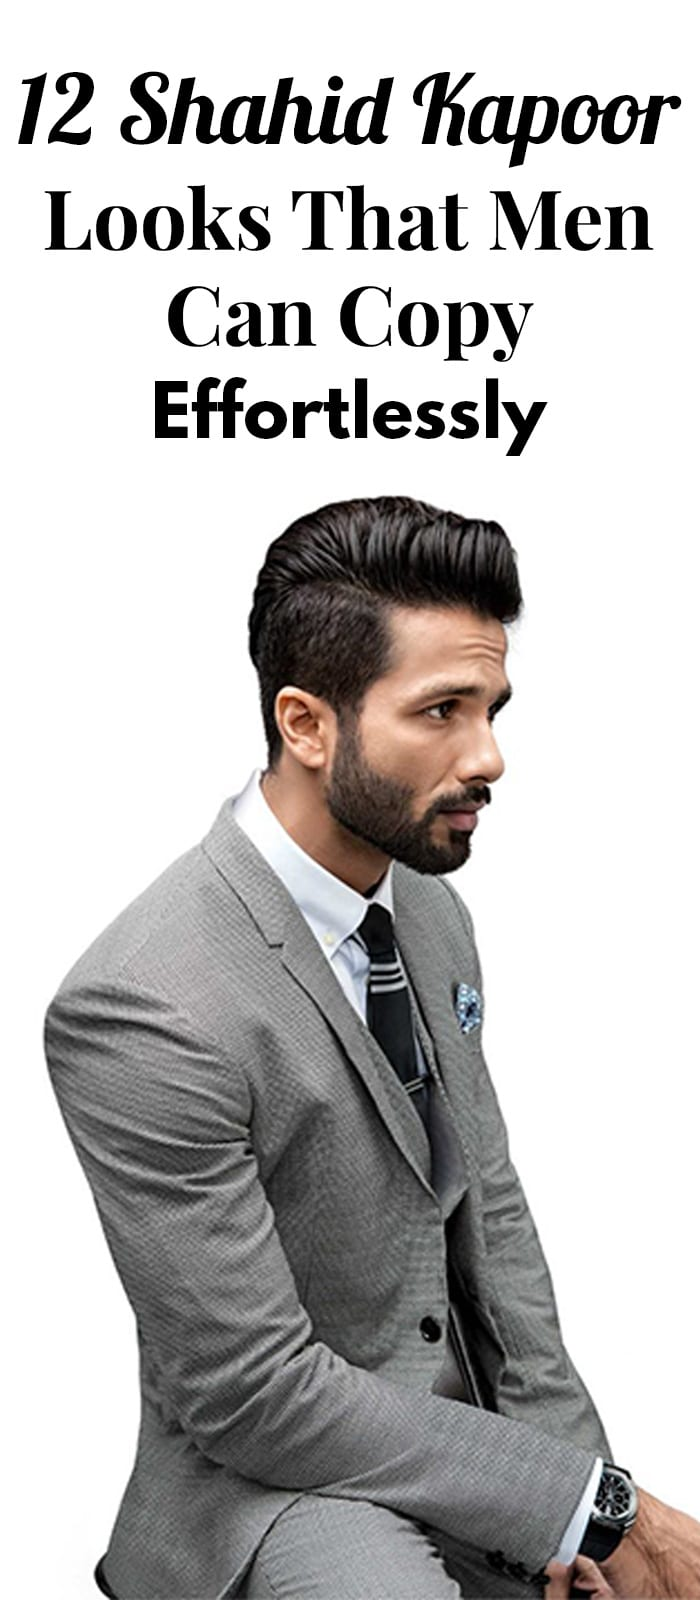 12 Shahid Kapoor Looks That Men Can Copy Effortlessly.